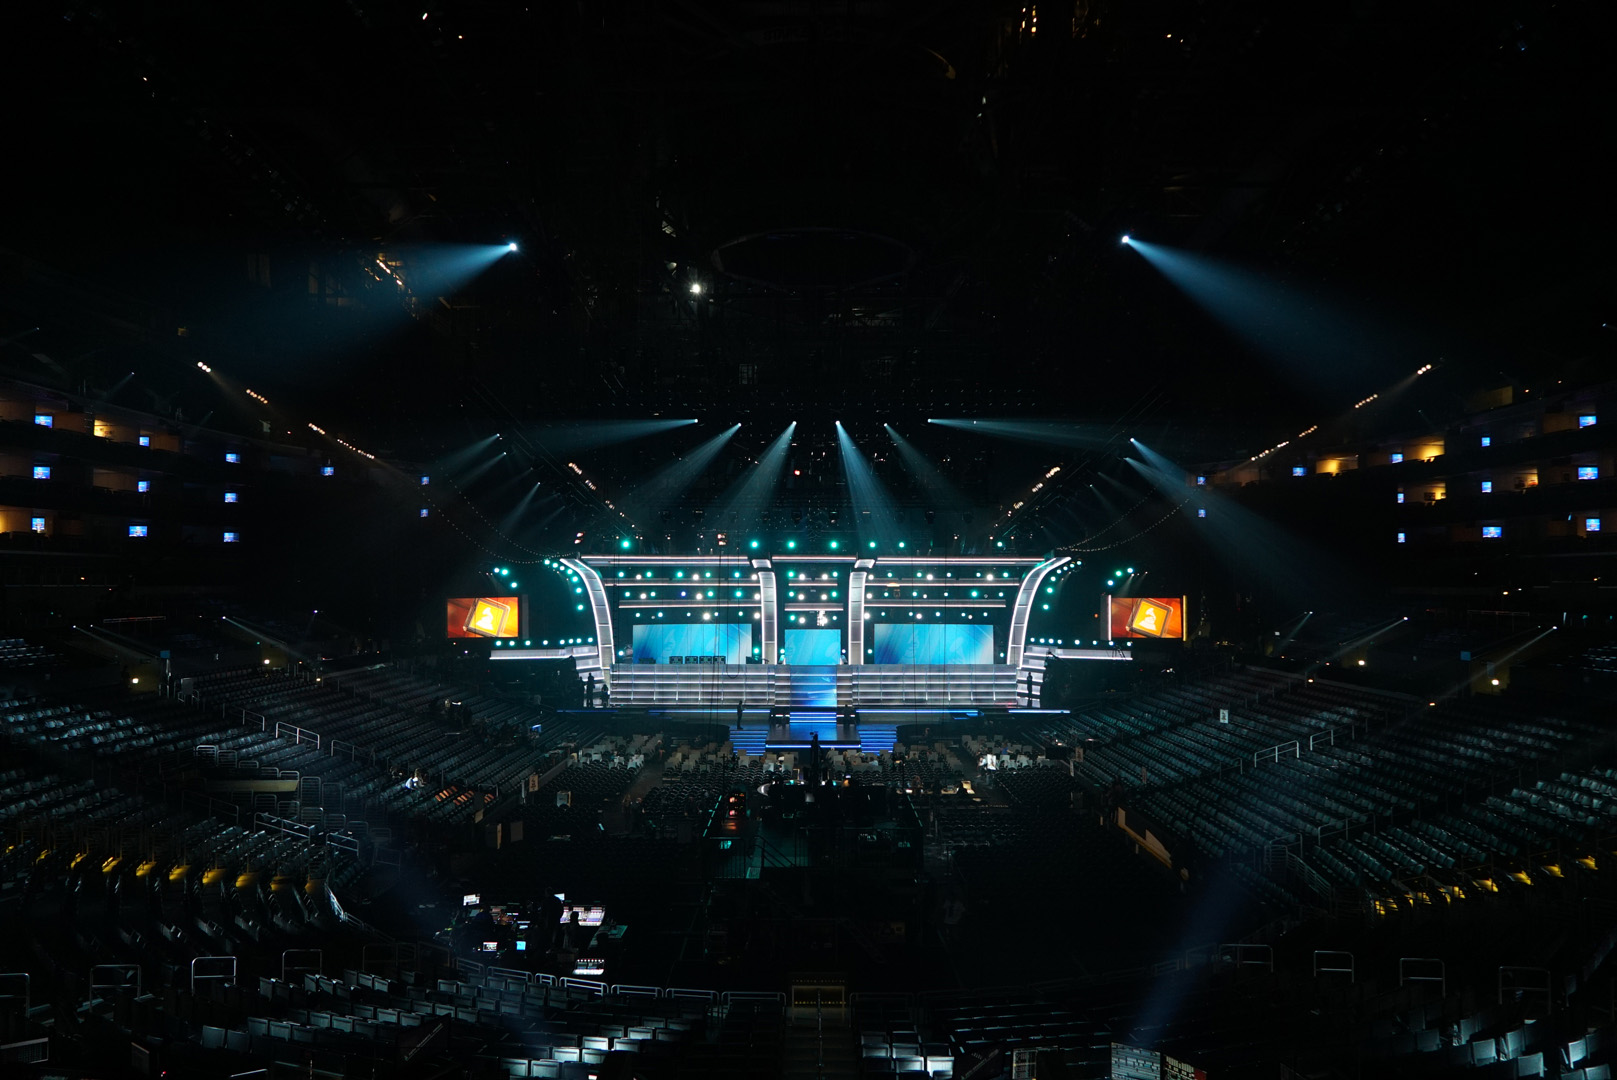 There's no bad seat when you're an audience member at the GRAMMYs this year!